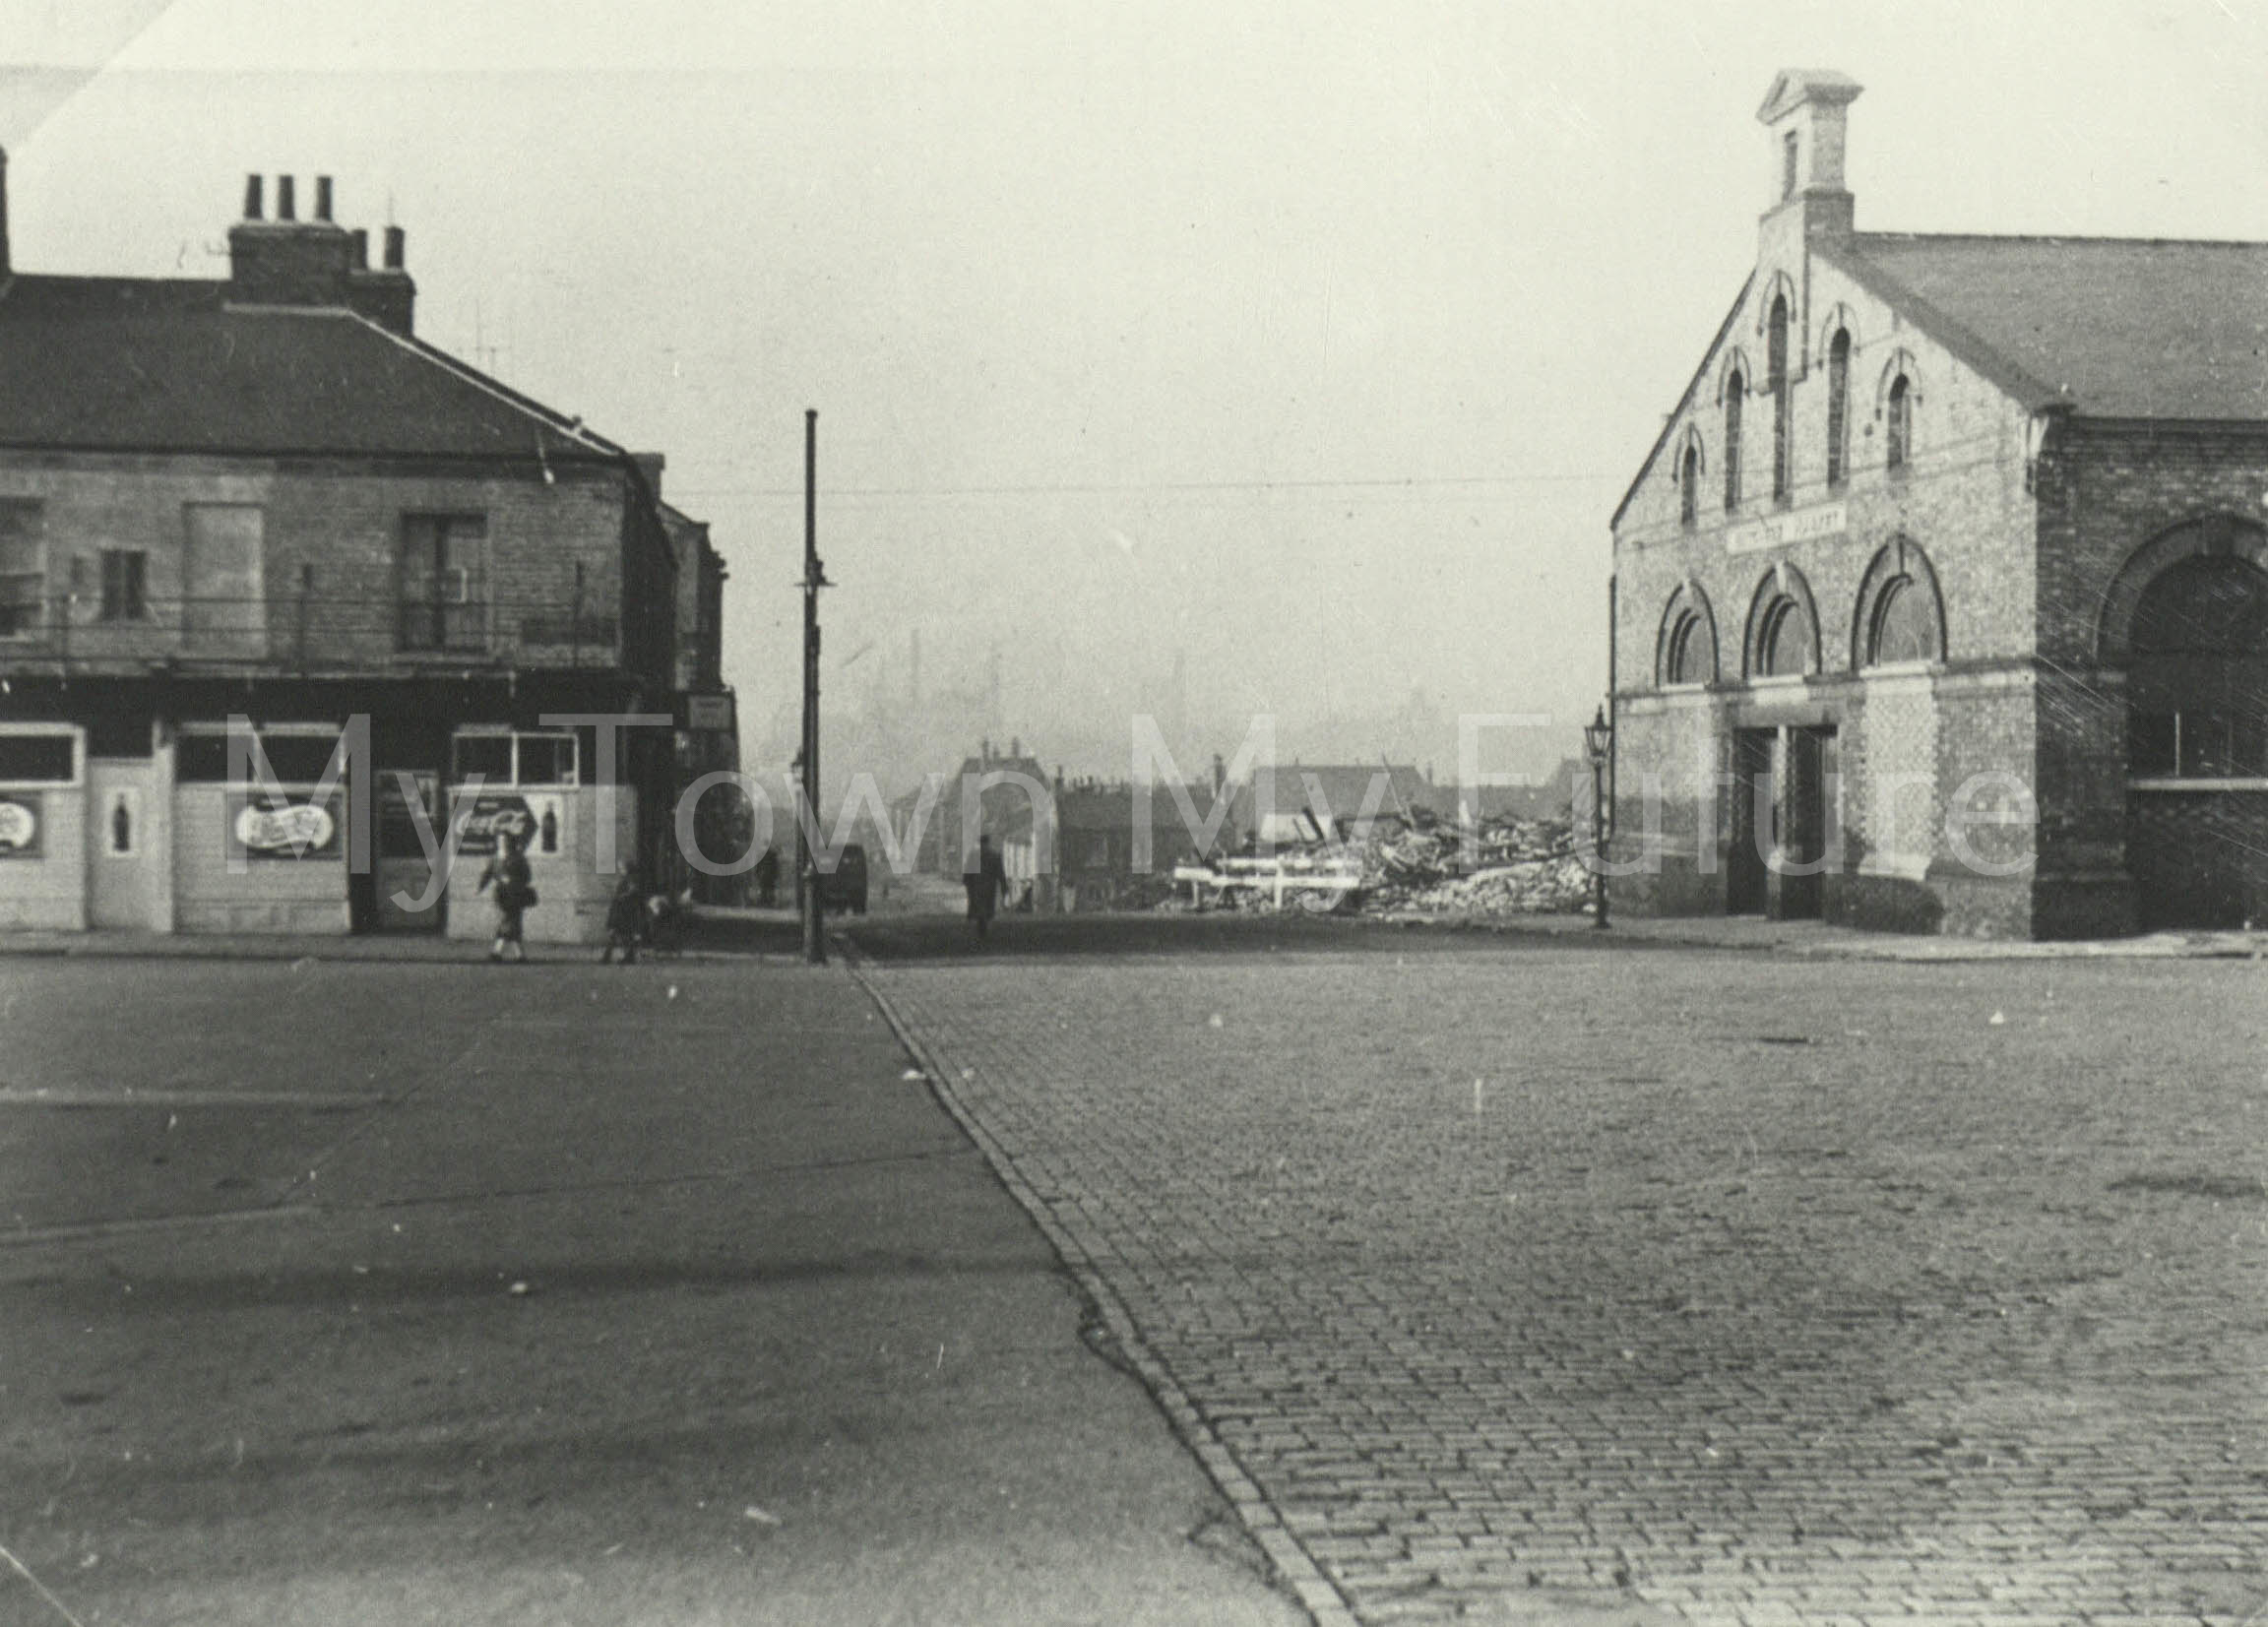 West Street - From Old Town Hall, 5th November 1955, Mr Browns Album